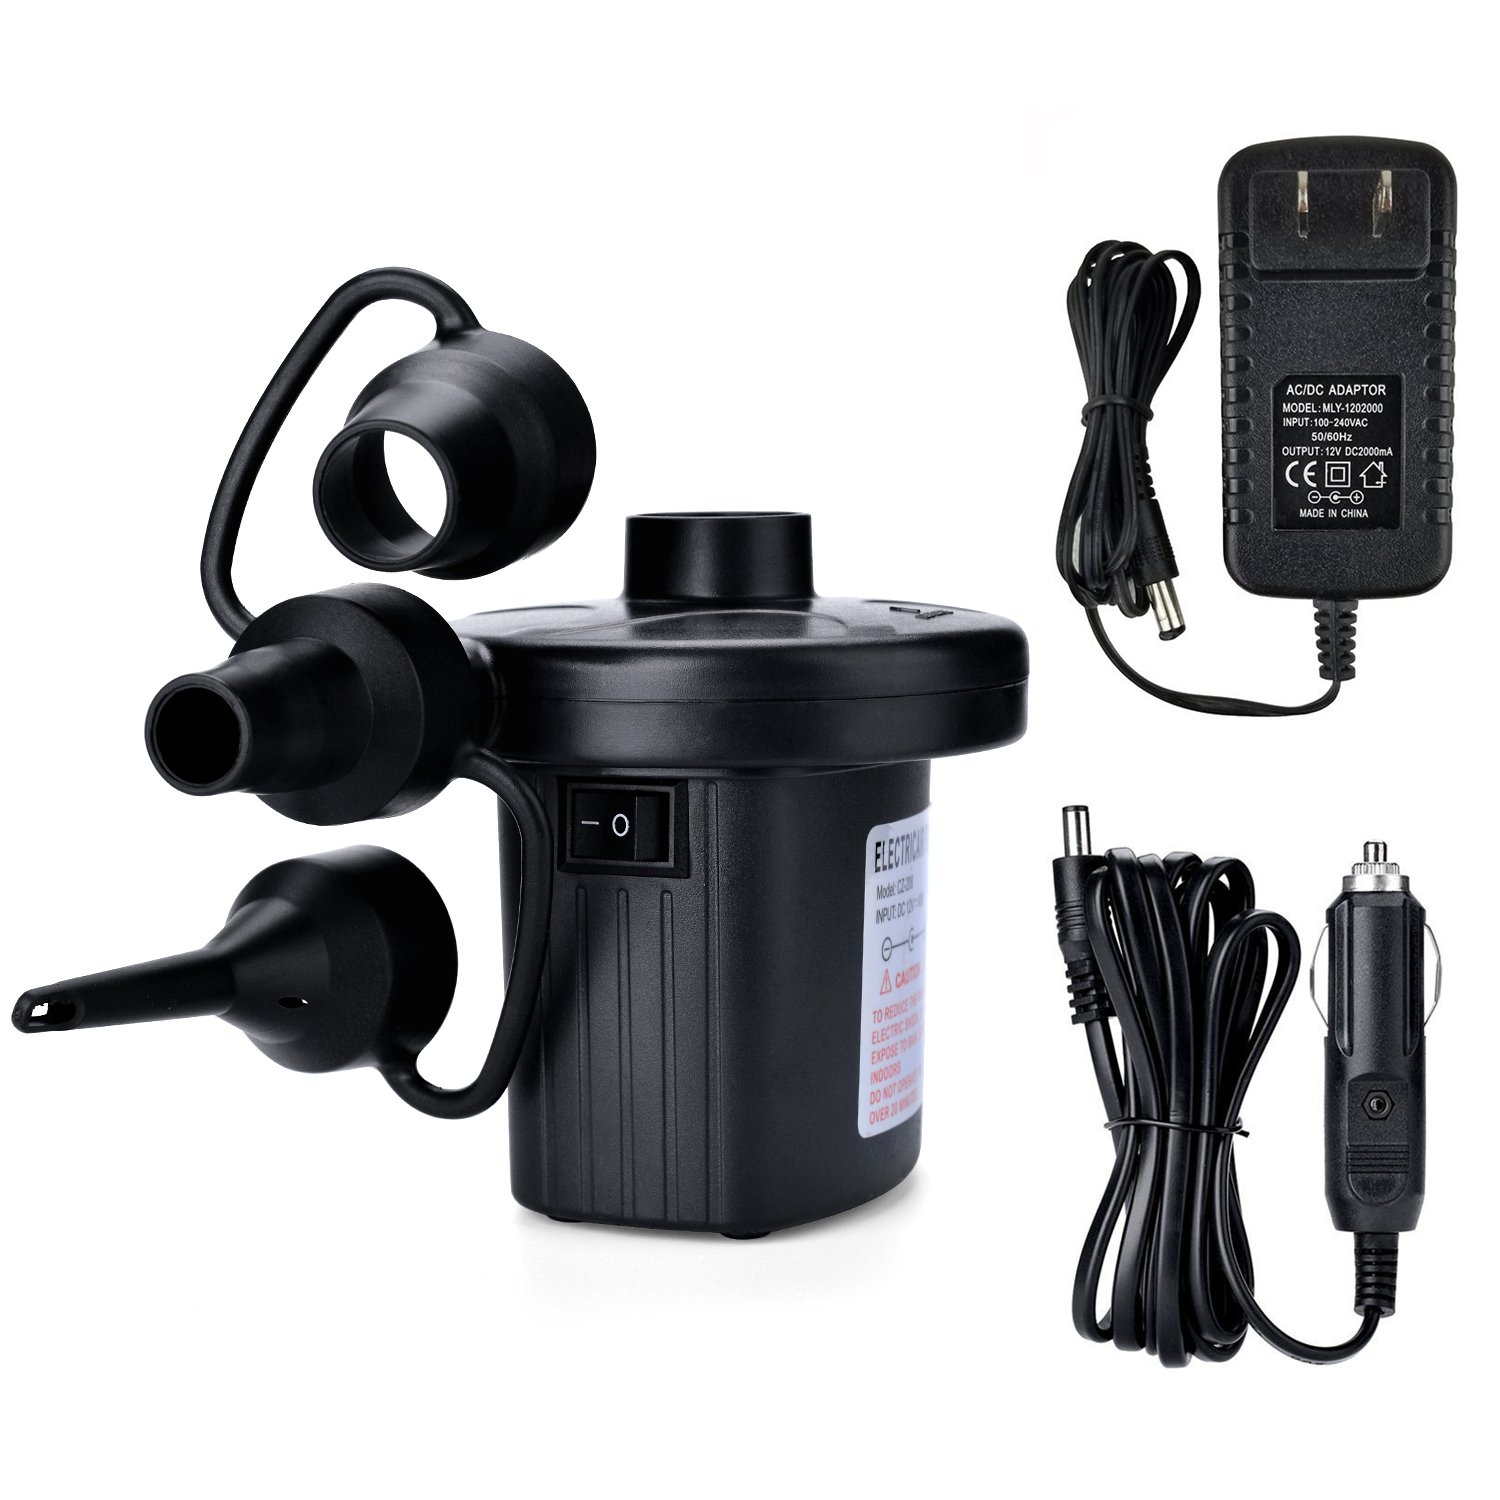 AGPtEK Portable car air mattress pump